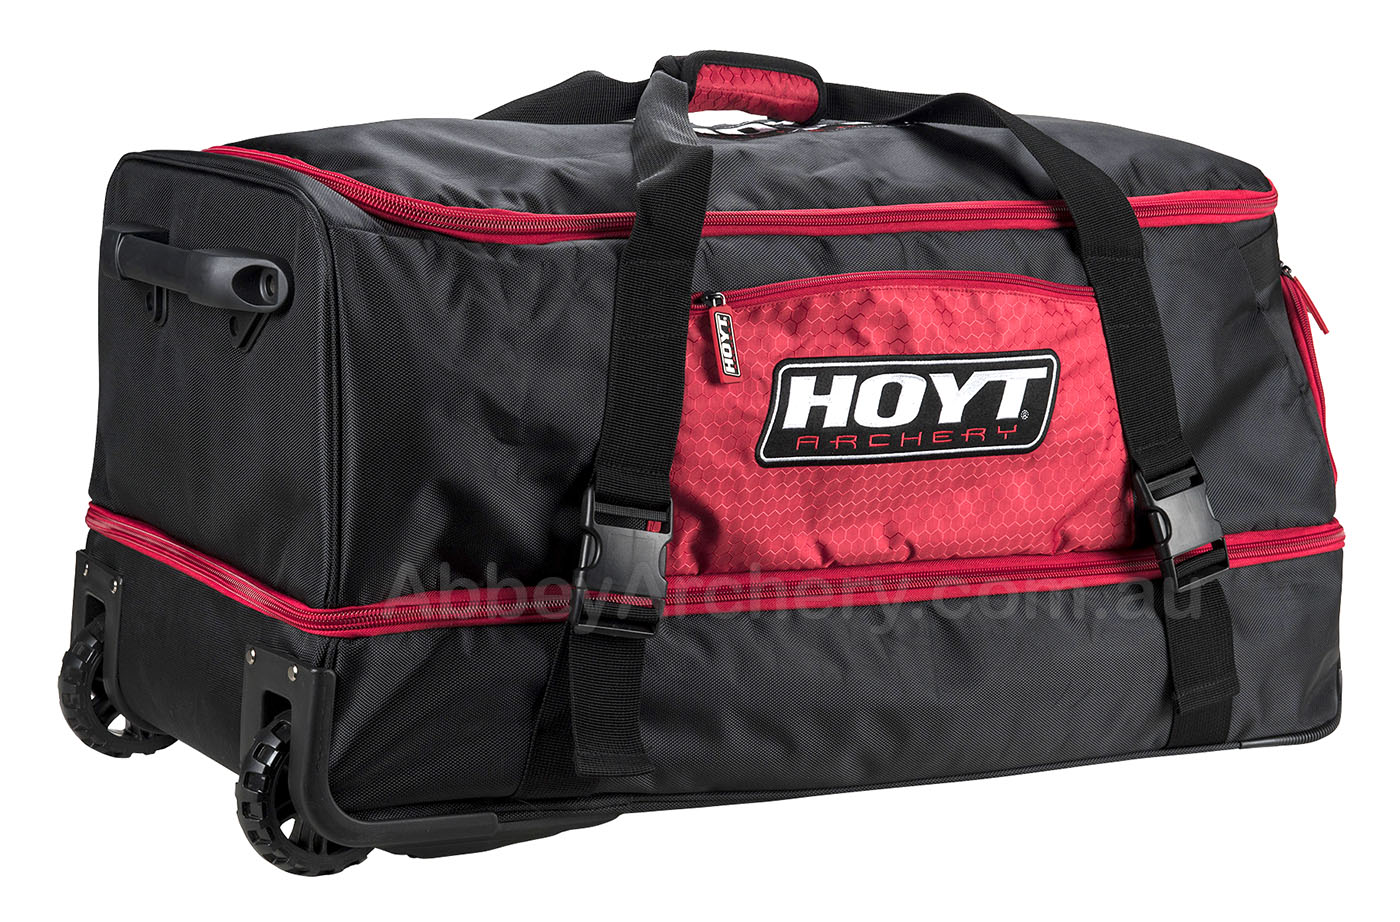 Dual Compartment Team Hoyt Rolling Duffel Bag Black Amp Red